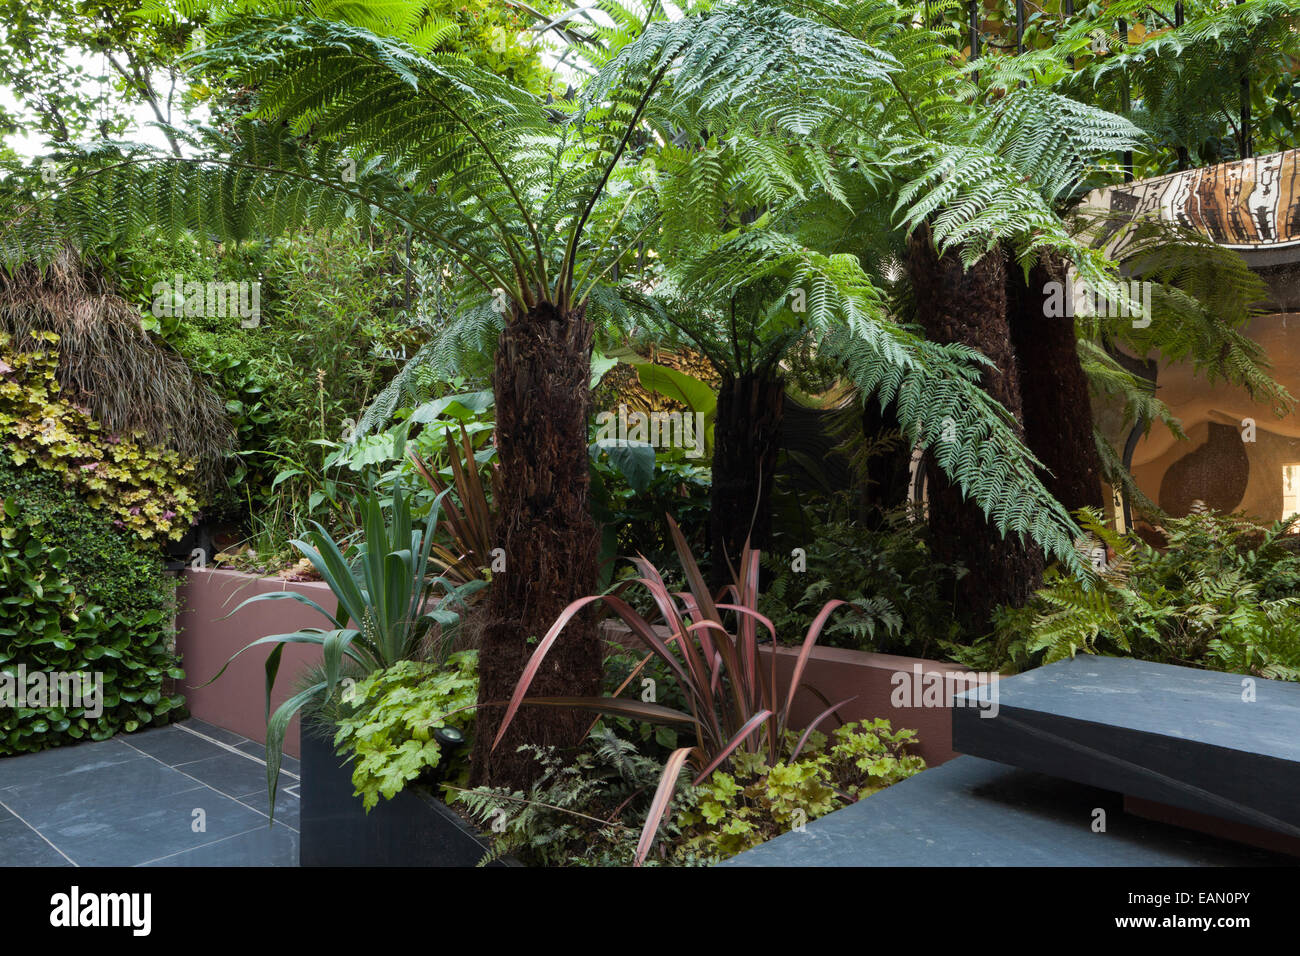 Patio Garden At Basement Level Showing Slate Steps, Raised Bed And  Powder Coated Steel Planter, With Tree Ferns, Ferns, Melianthus, Phormiums,  ...